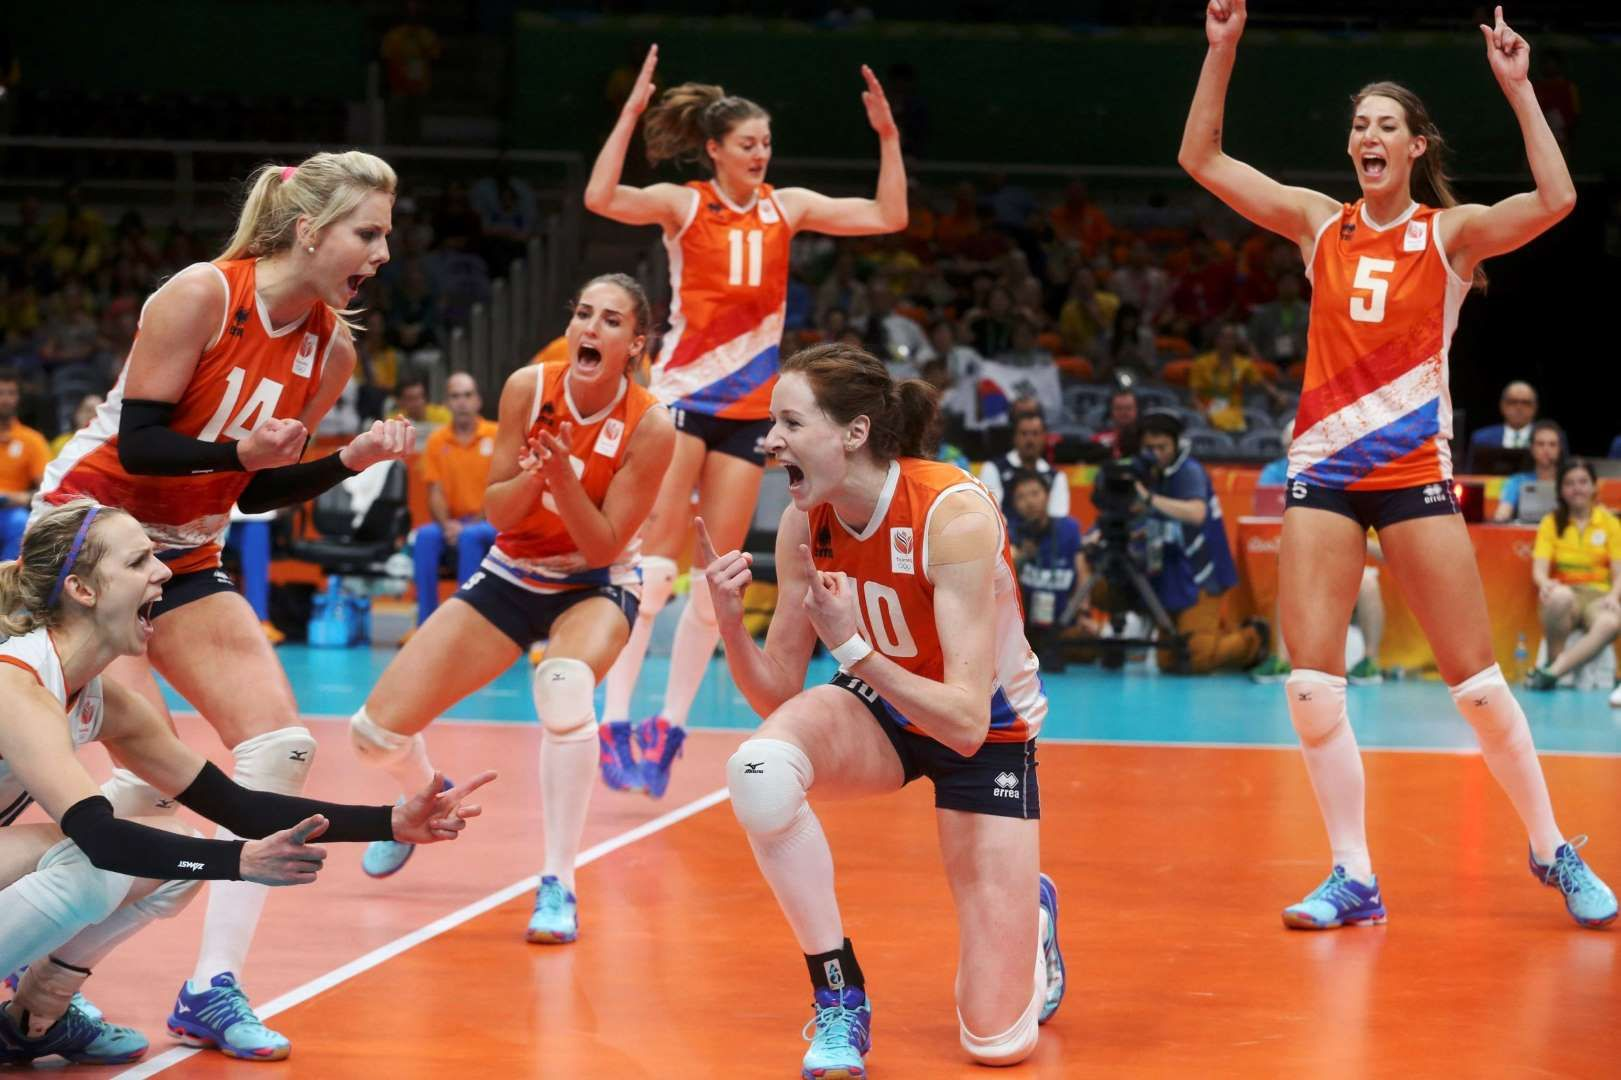 The Thrill Of Victory Dutch Players Celebrate After Defeating South Korea In The Women S Volleyball Q Olympic Volleyball Female Volleyball Players Olympics